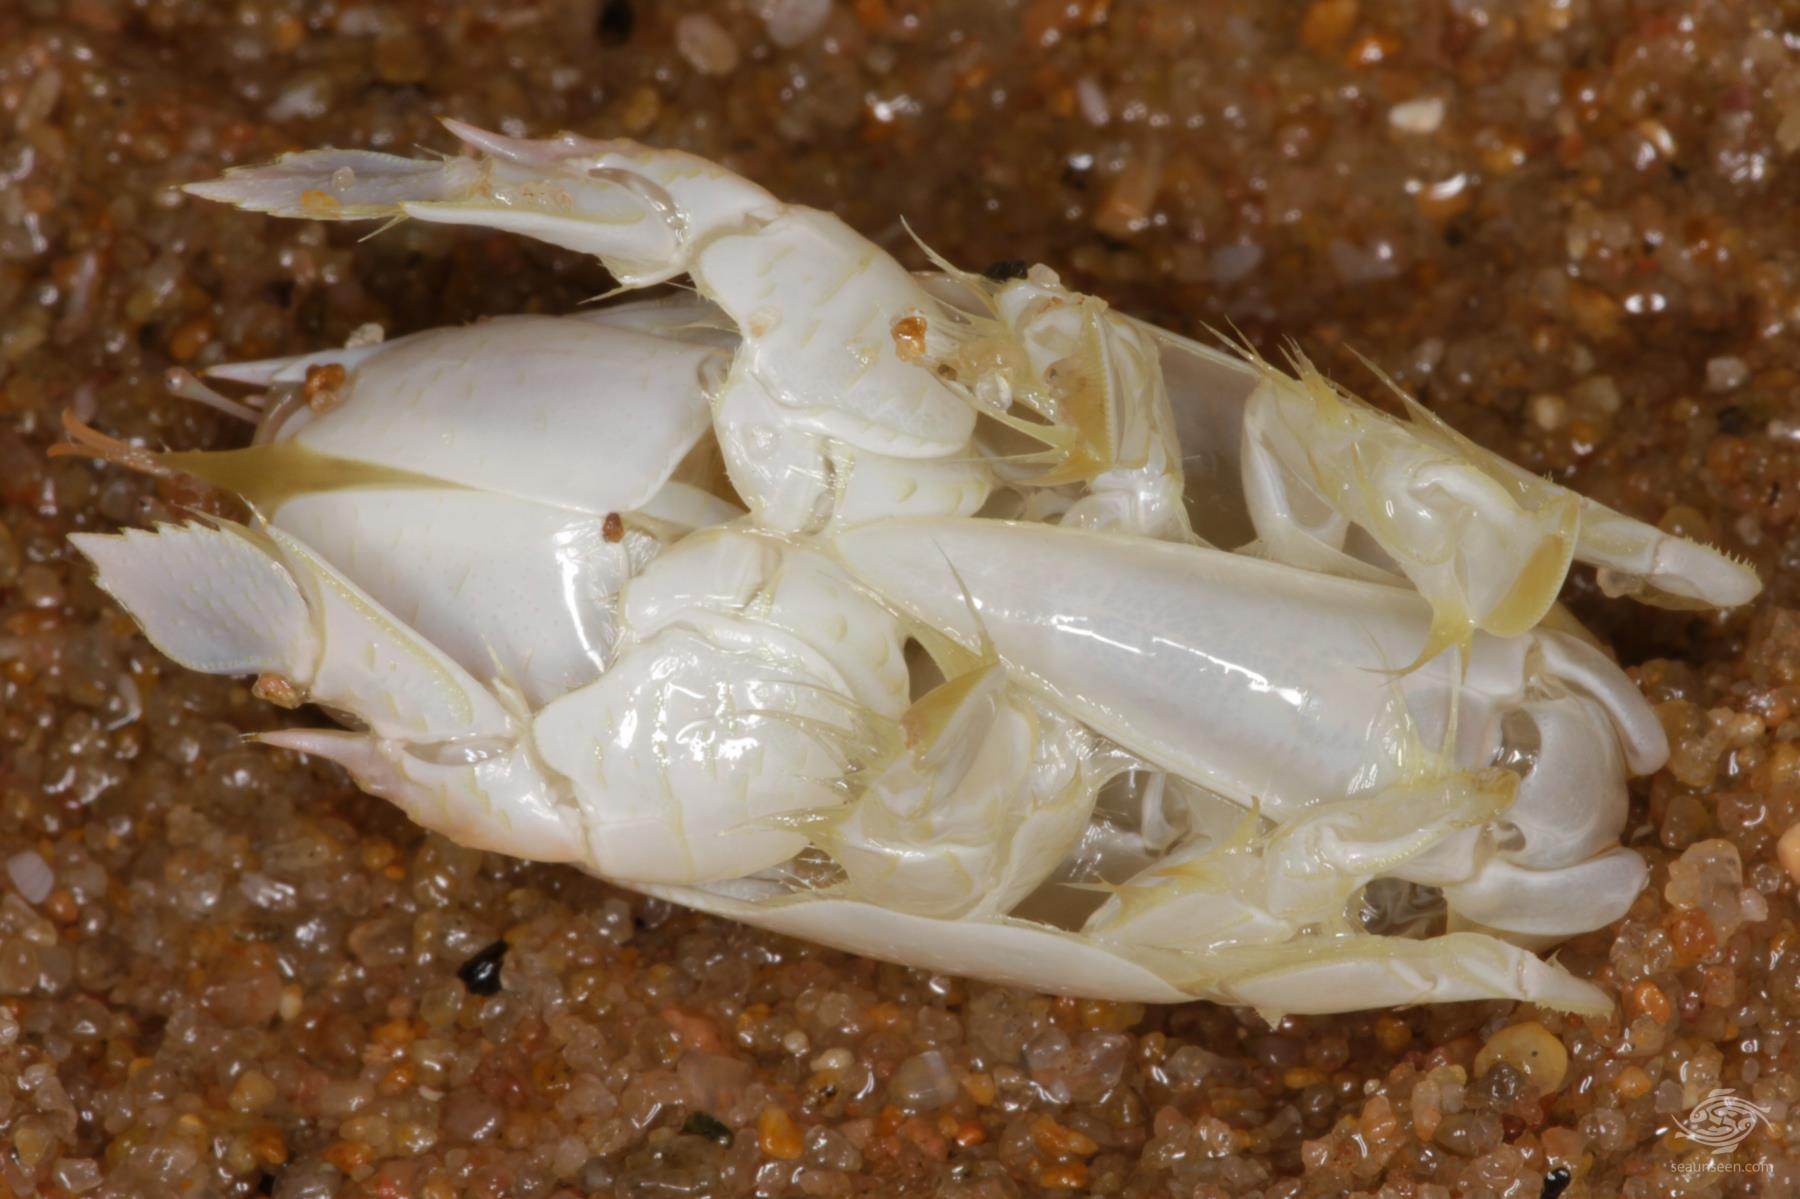 Mole Crabs- Sea Lice-Genus Emerita underside showing legs and telford